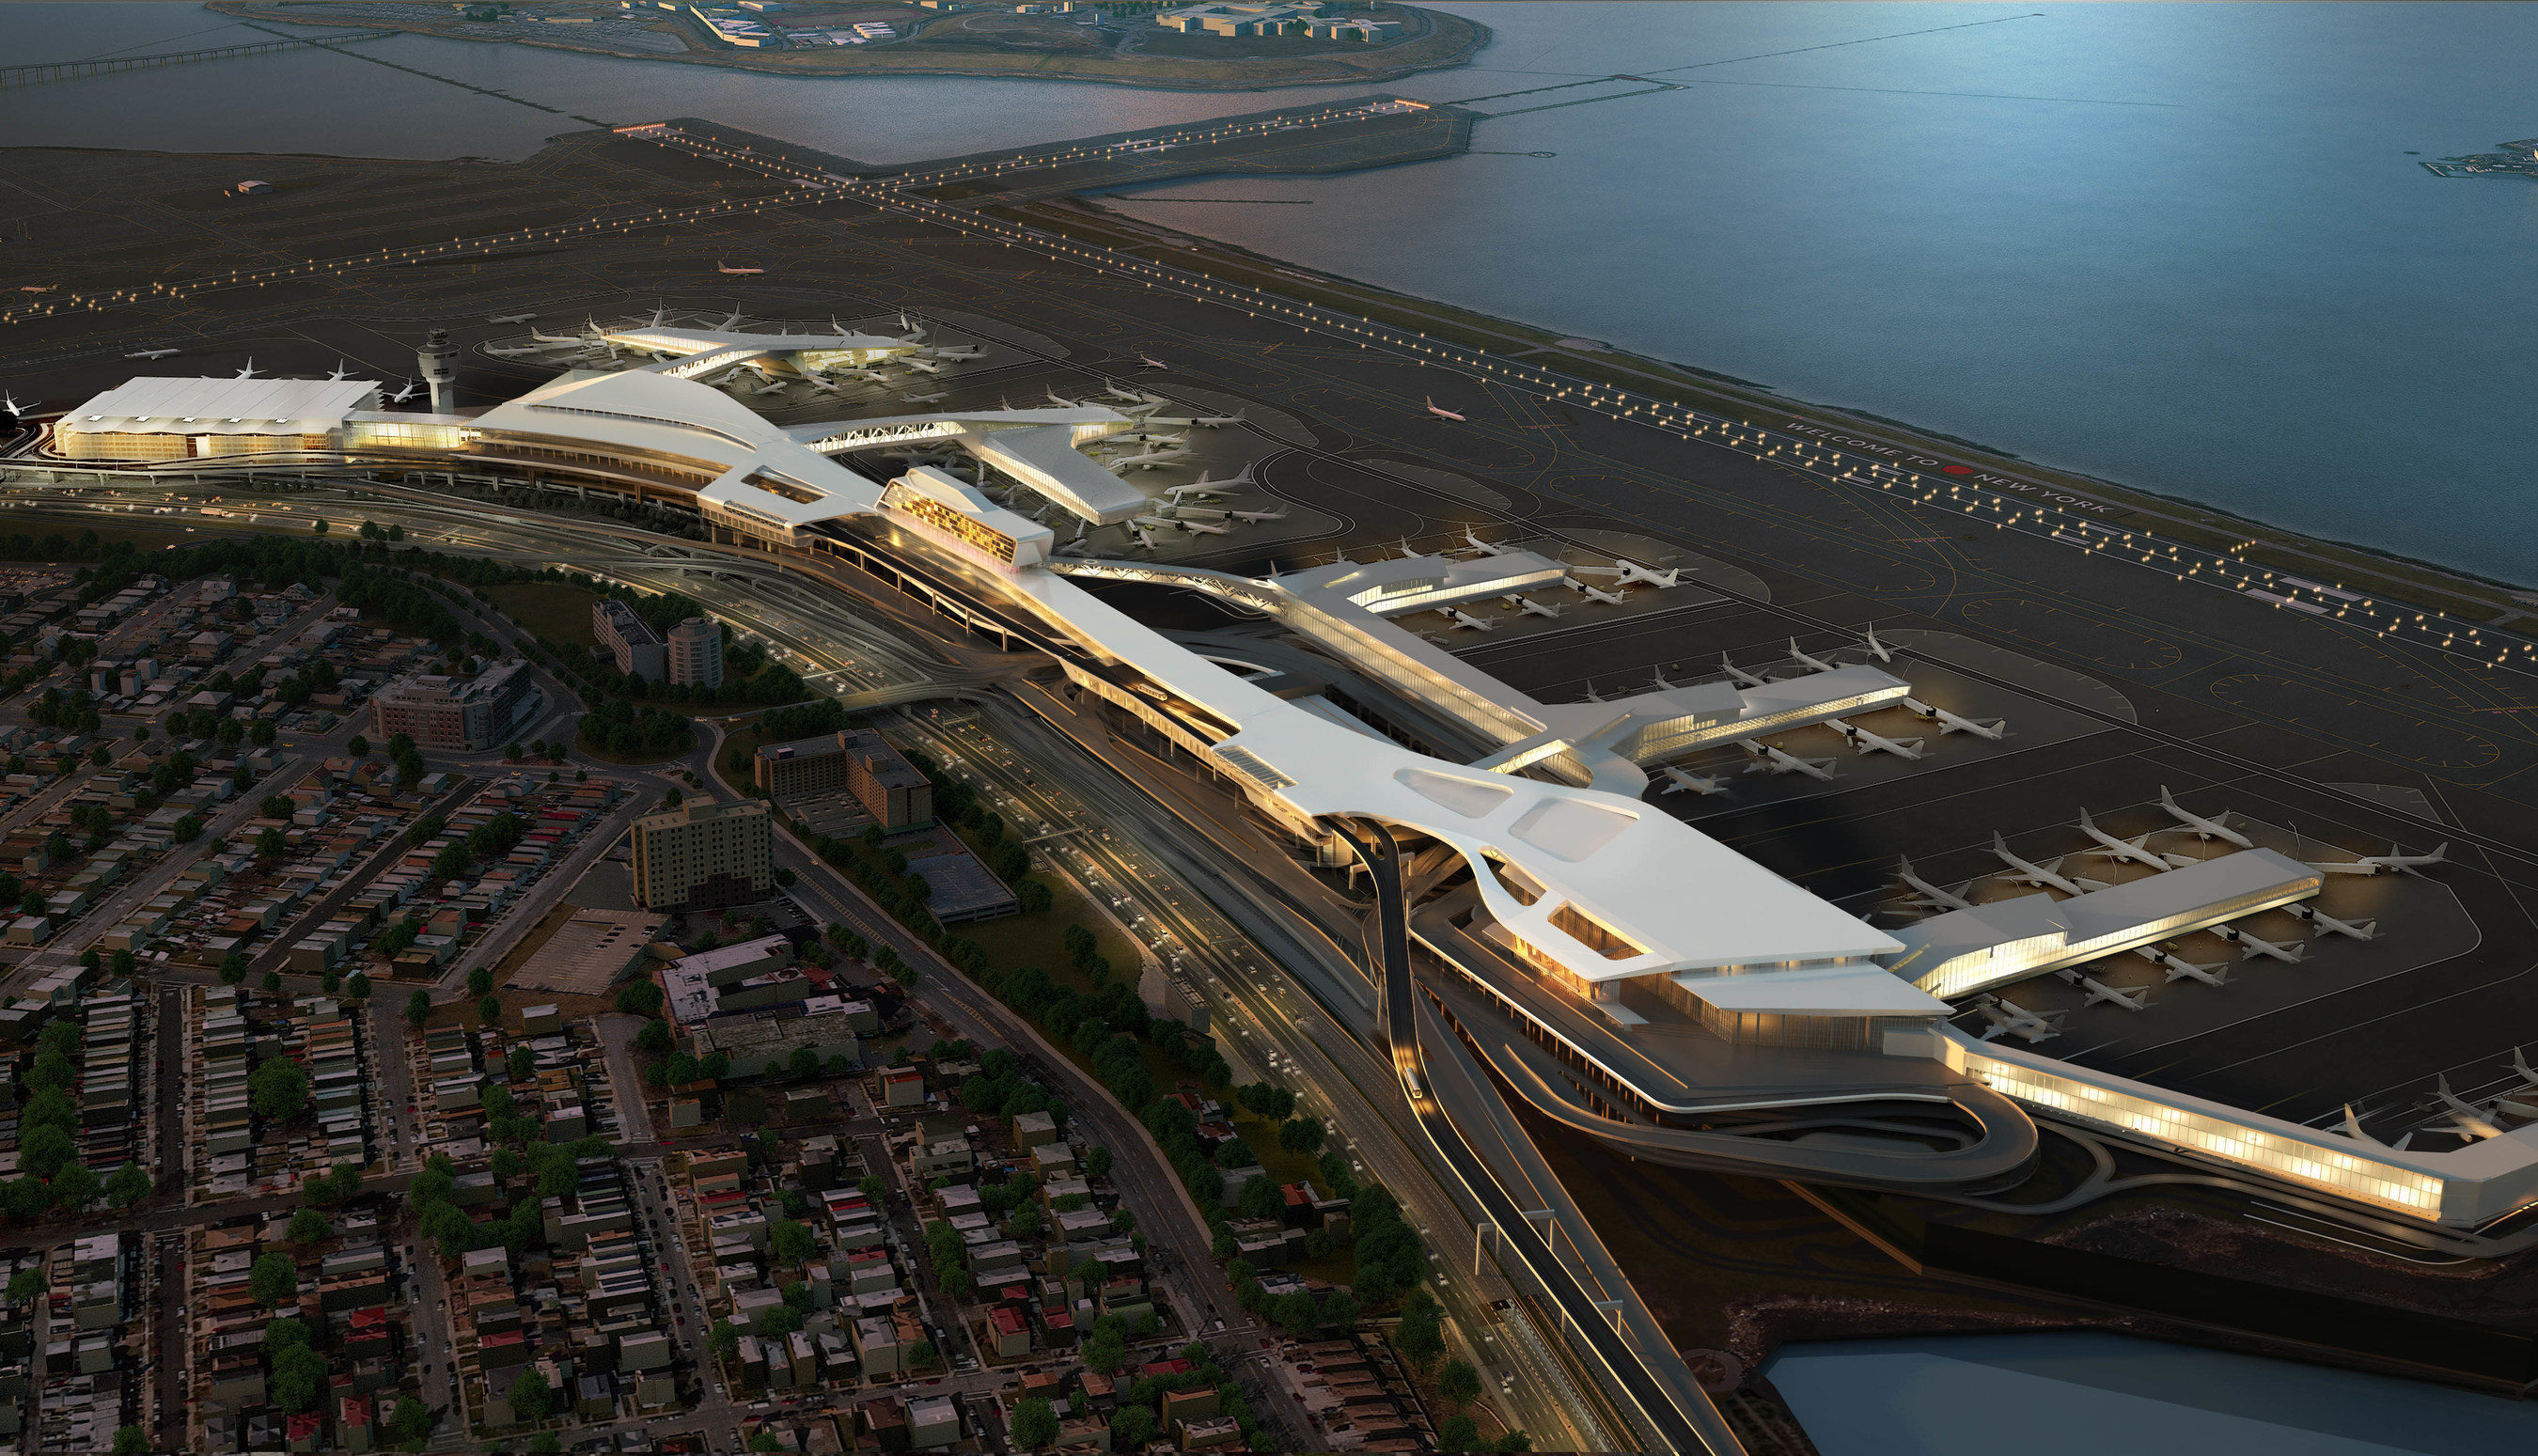 Delta to partner with Port Authority on LaGuardia terminal redevelopment